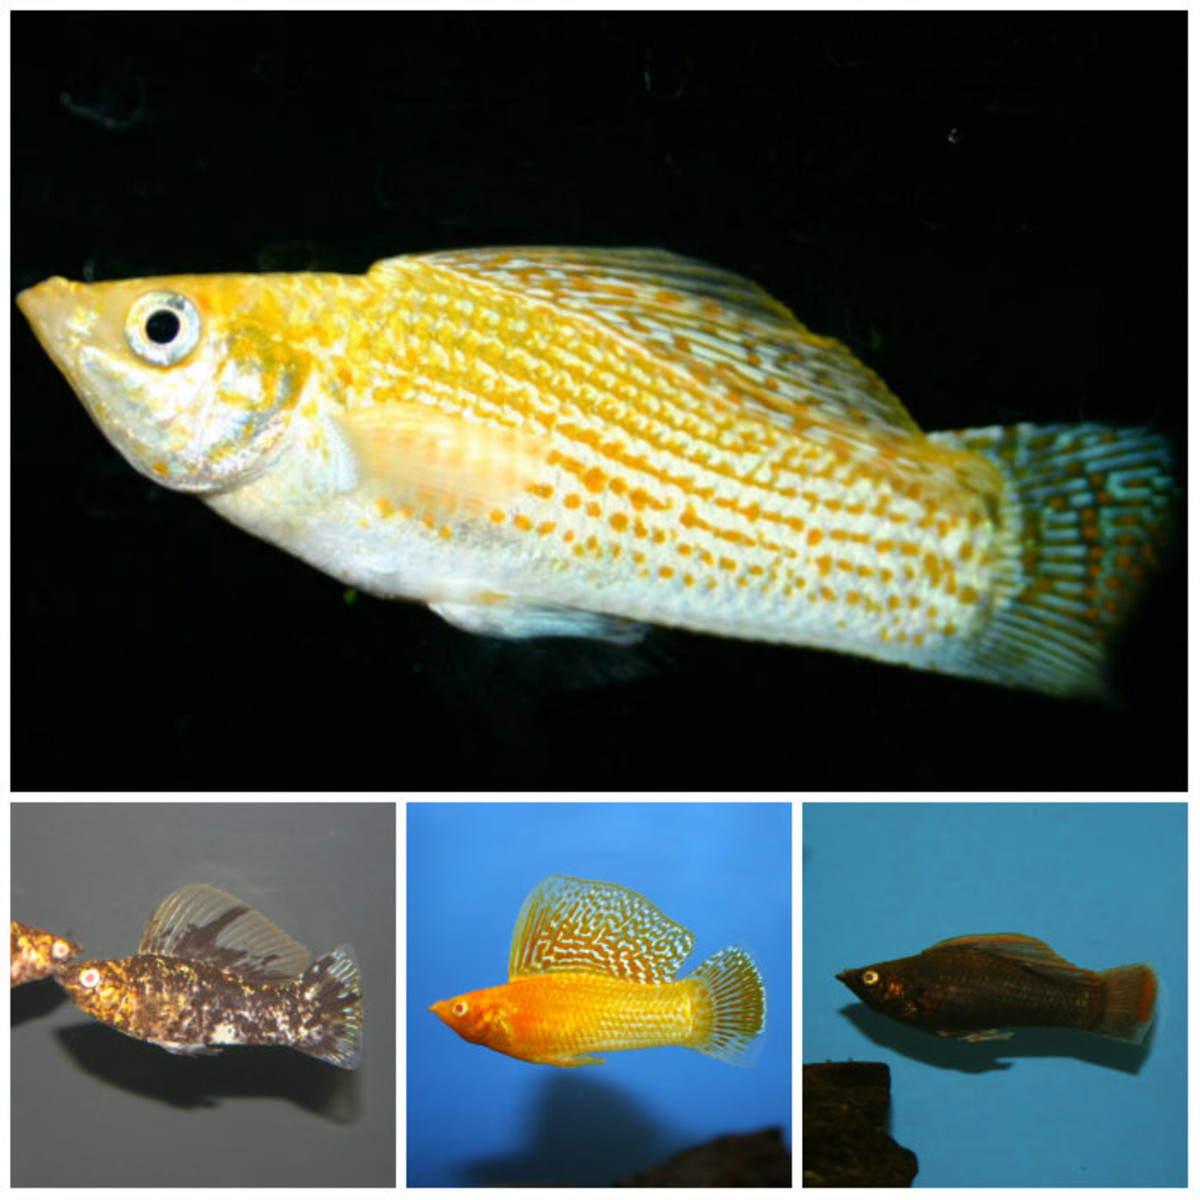 Assorted Sailfin Molly Poecilia Velifera